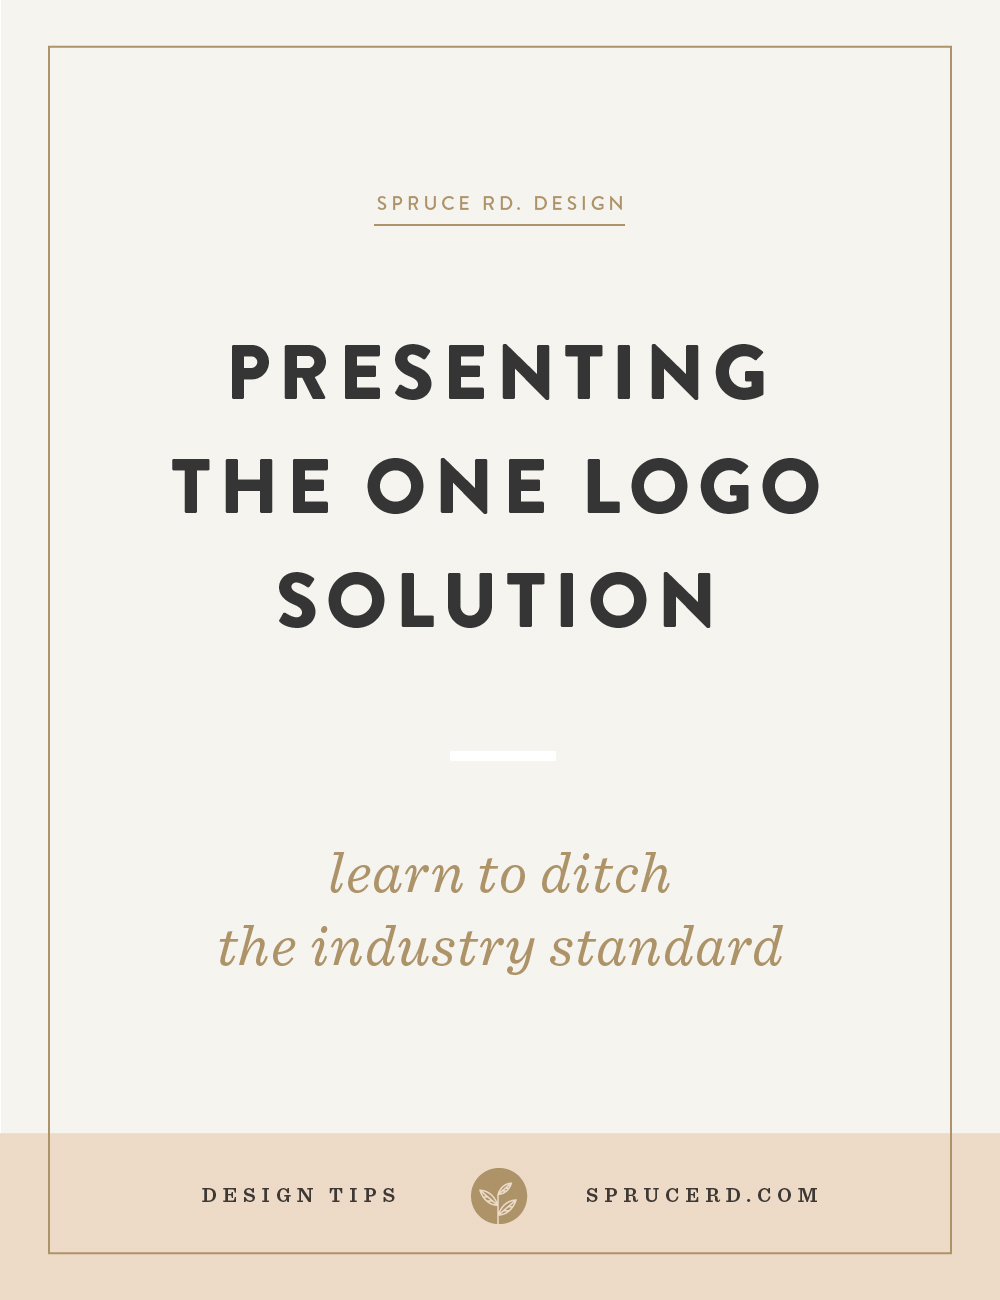 Ditch the industry standard: Presenting one logo | Spruce Rd. | Pitching design work to your clients isn't always easy. There's an art to presentation that results in minimal client revisions, quality designs and high fives all around. In this post I share the benefits behind presenting one logo solution to clients.